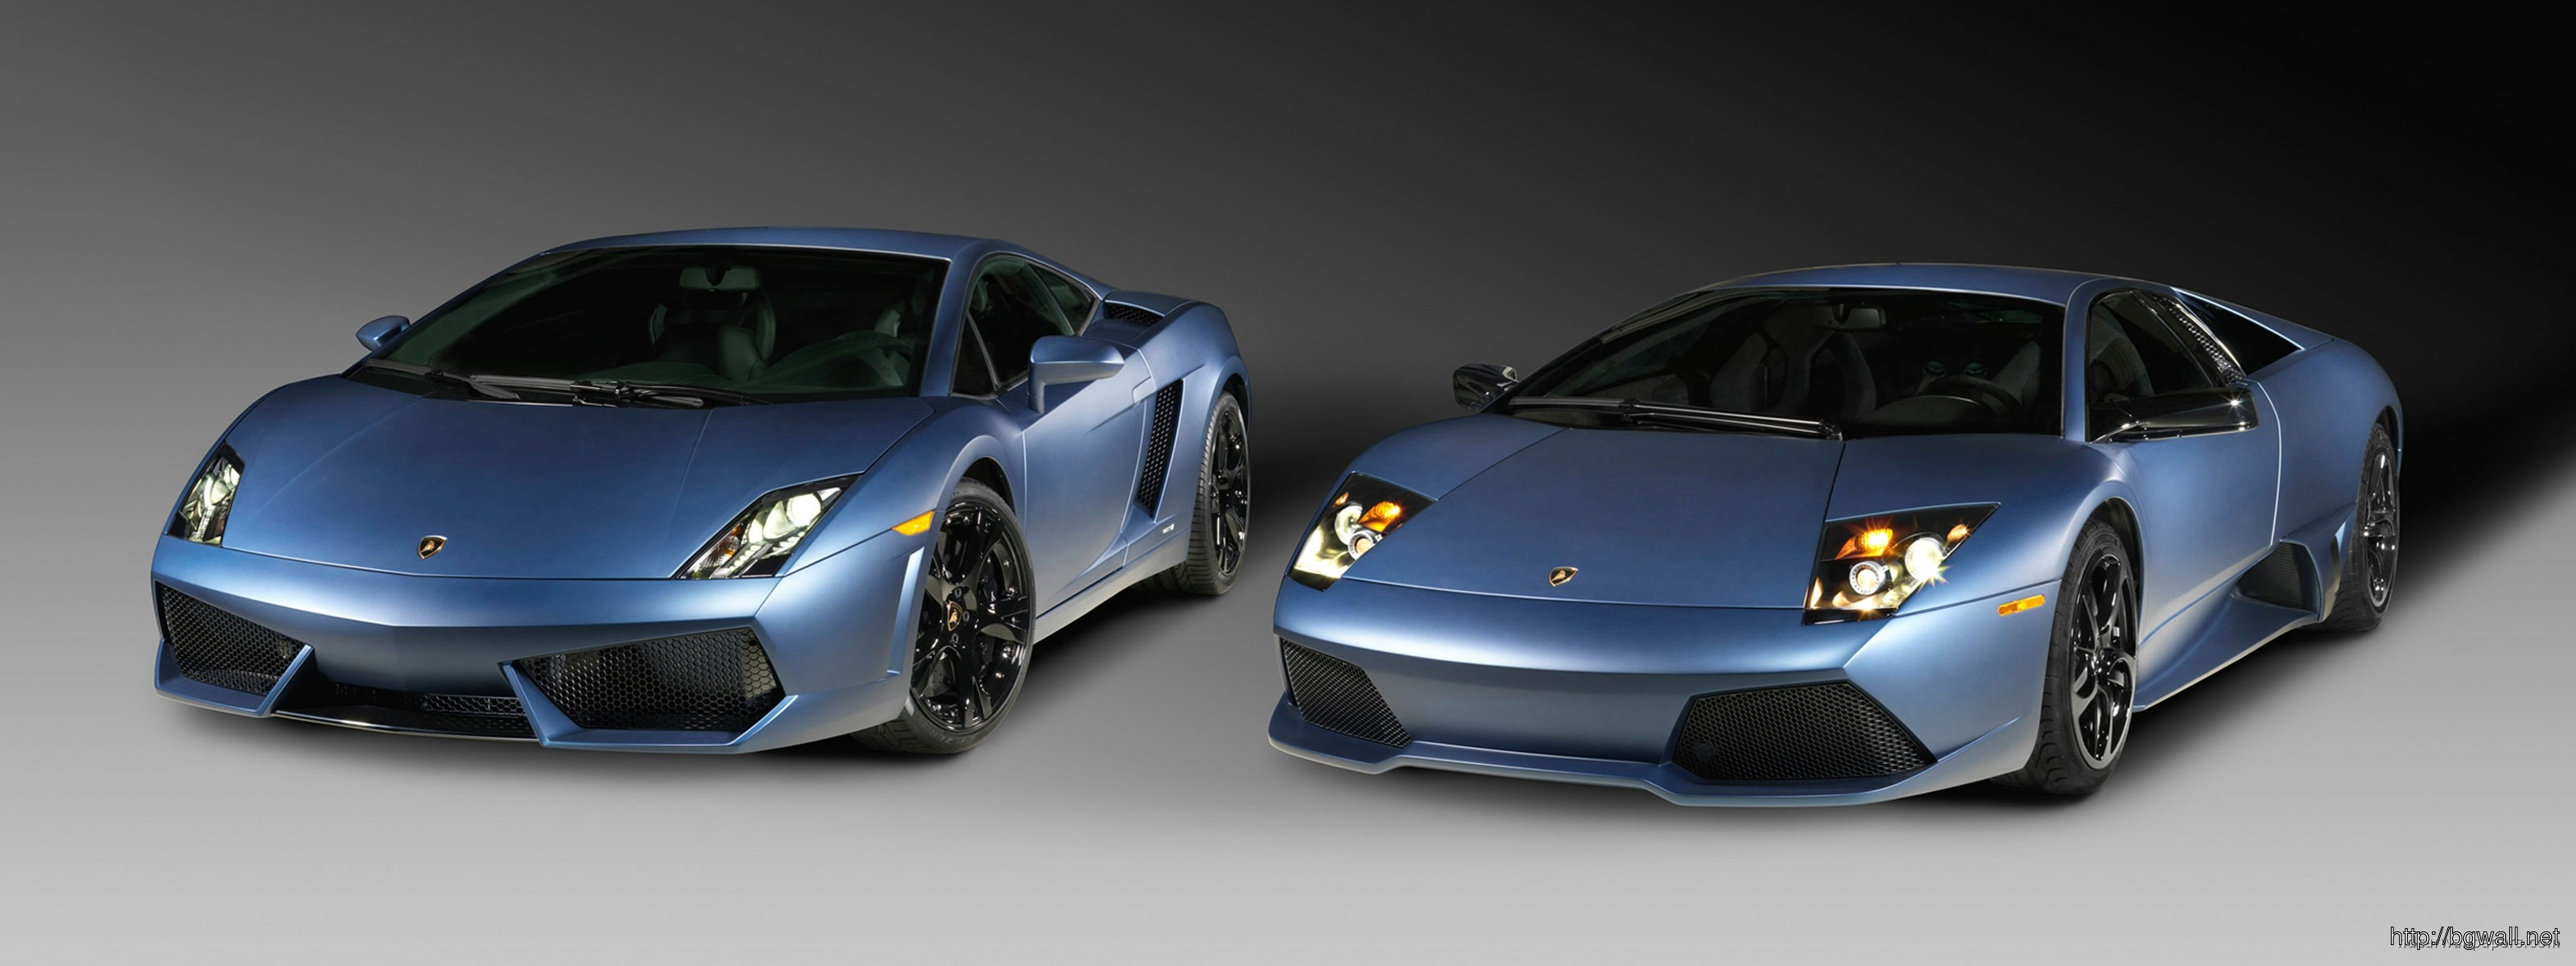 Lamborghini Gallardo Dual Monitor Wallpaper In 3200x1200 Resolution Full Size